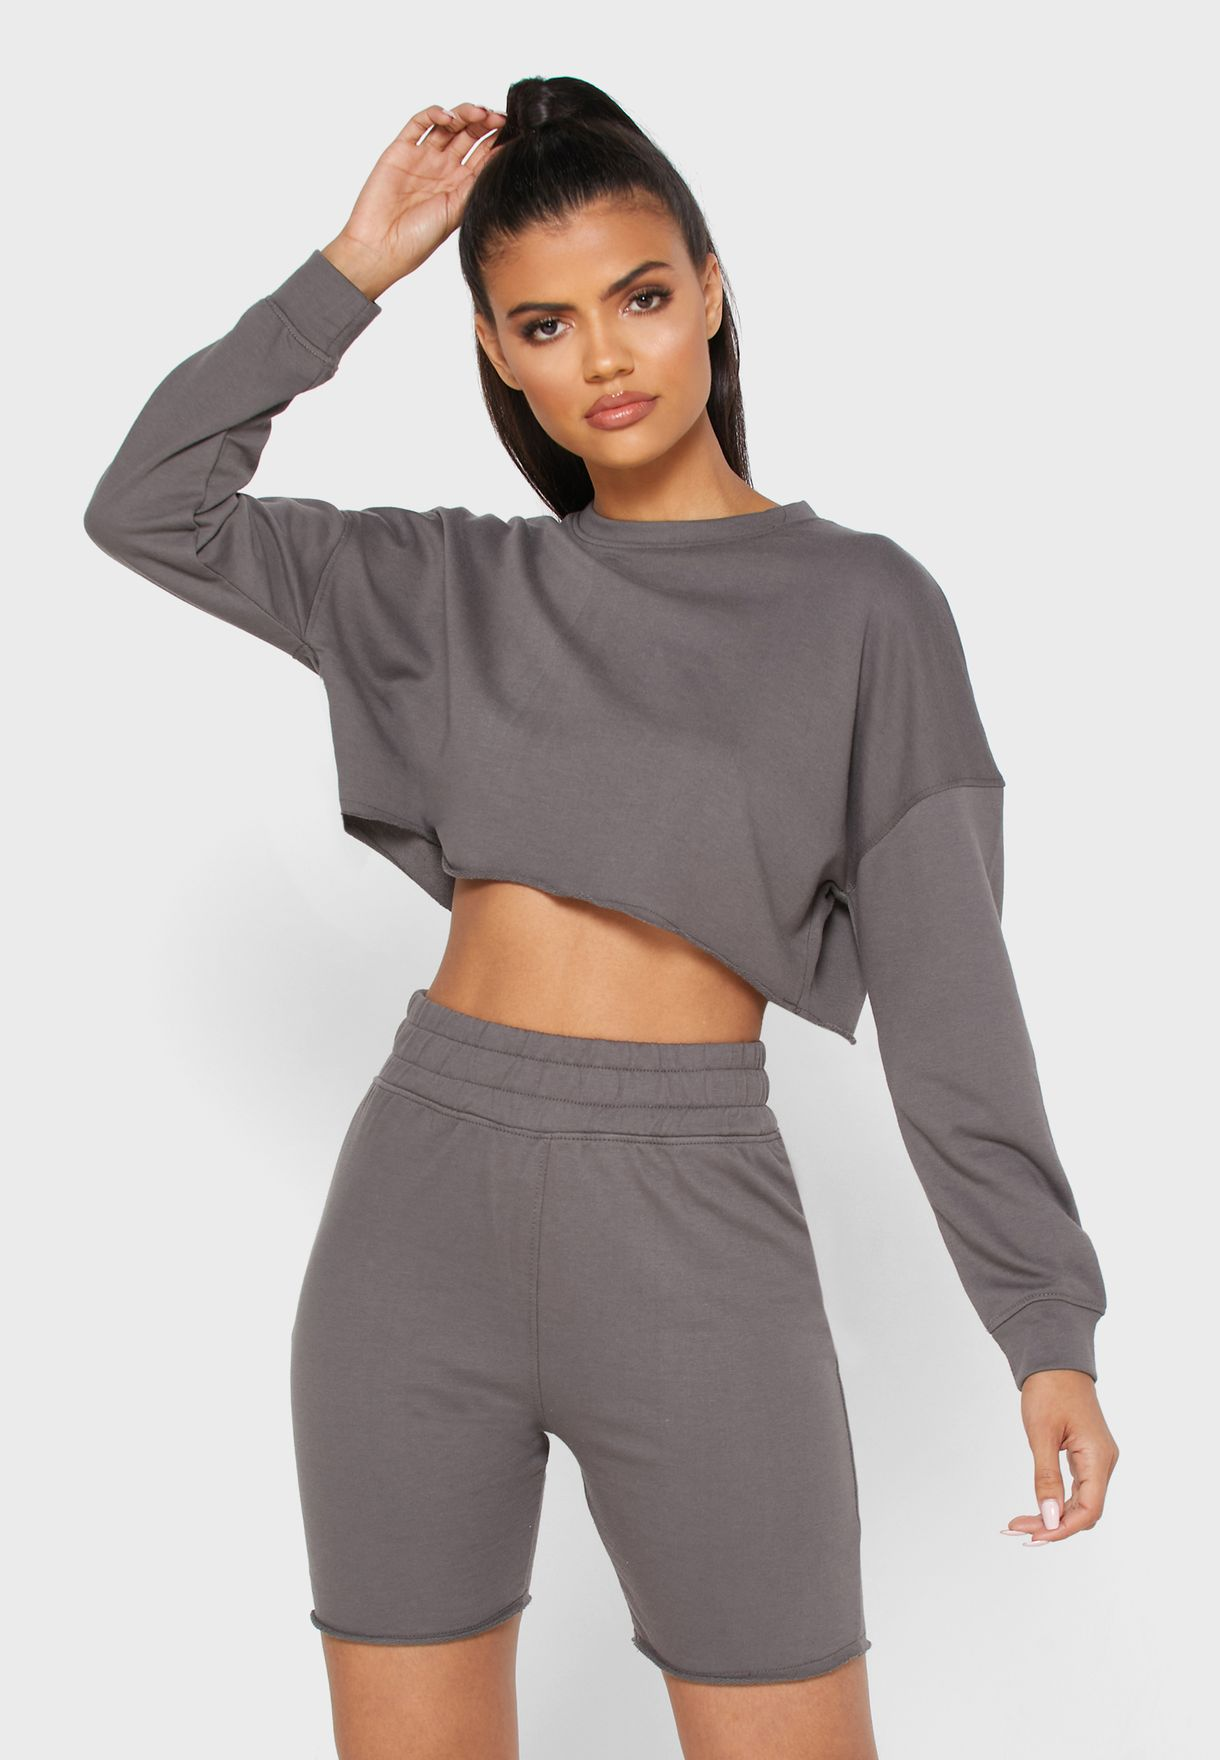 Cycling Shorts & Sweater Set Co Ord